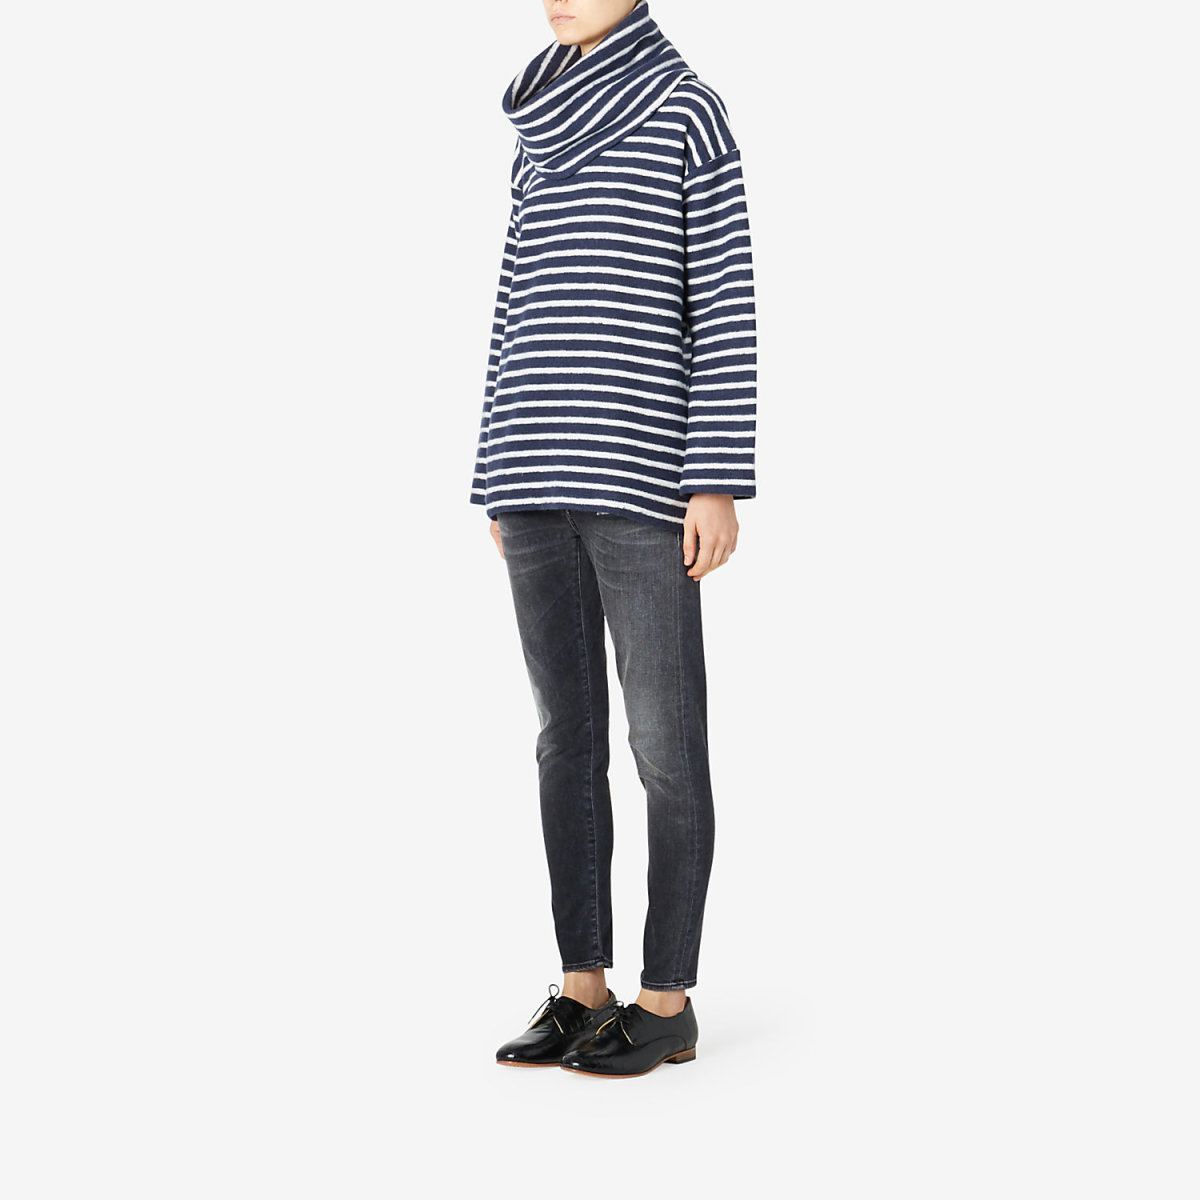 Calder Rani Striped Turtleneck, $198, available at Steven Alan.